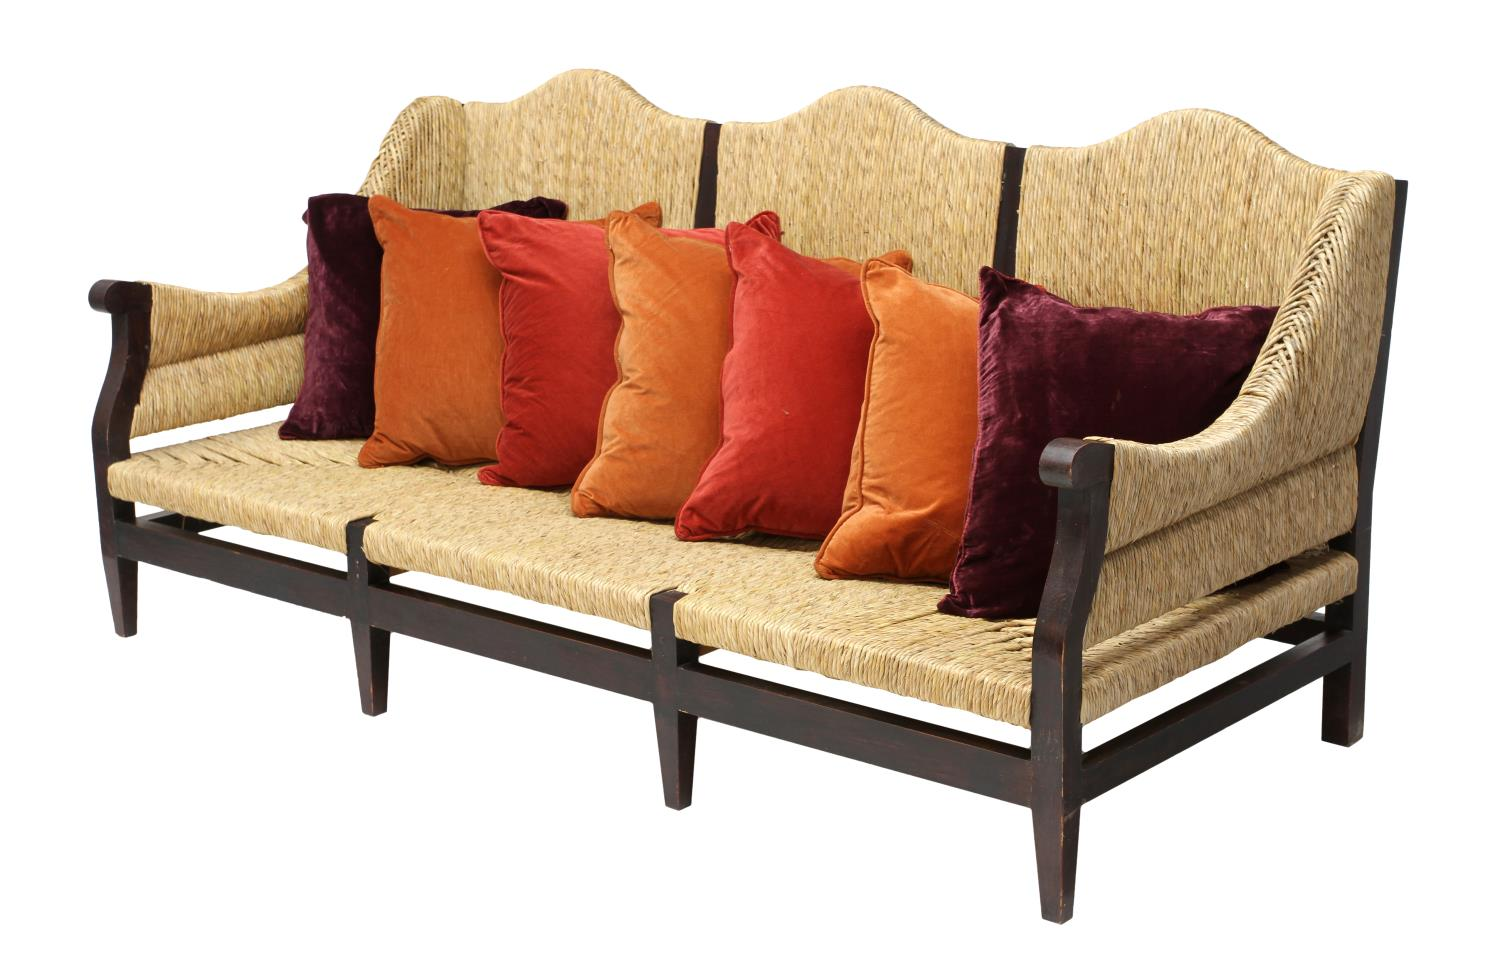 large rush sofa or day bed mexico august estates. Black Bedroom Furniture Sets. Home Design Ideas